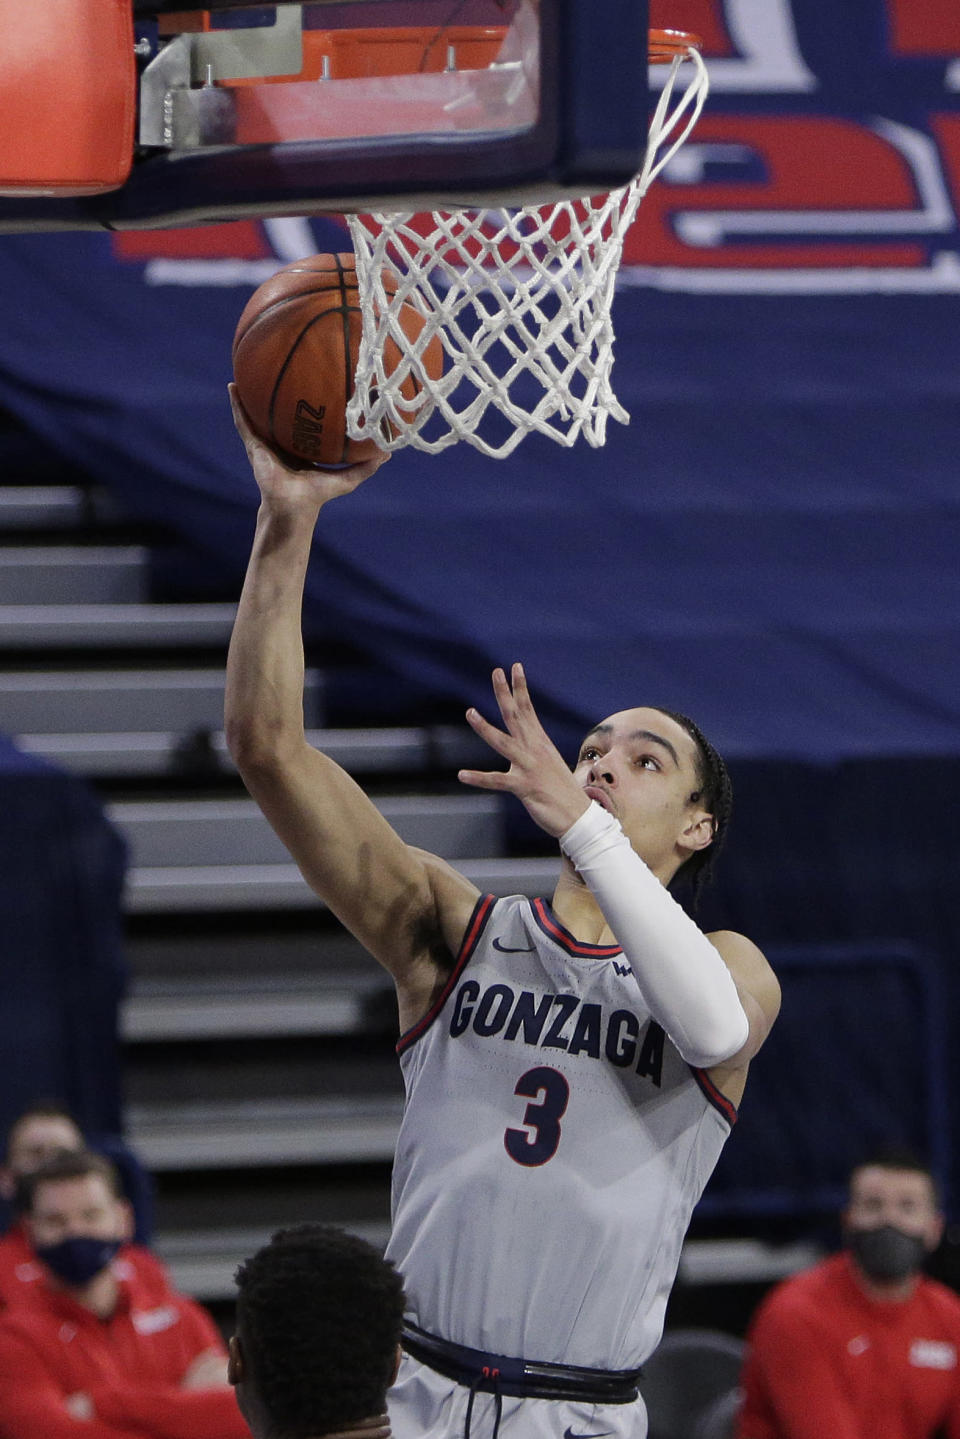 Gonzaga guard Andrew Nembhard shoots during the second half of the team's NCAA college basketball game against San Diego in Spokane, Wash., Saturday, Feb. 20, 2021. (AP Photo/Young Kwak)